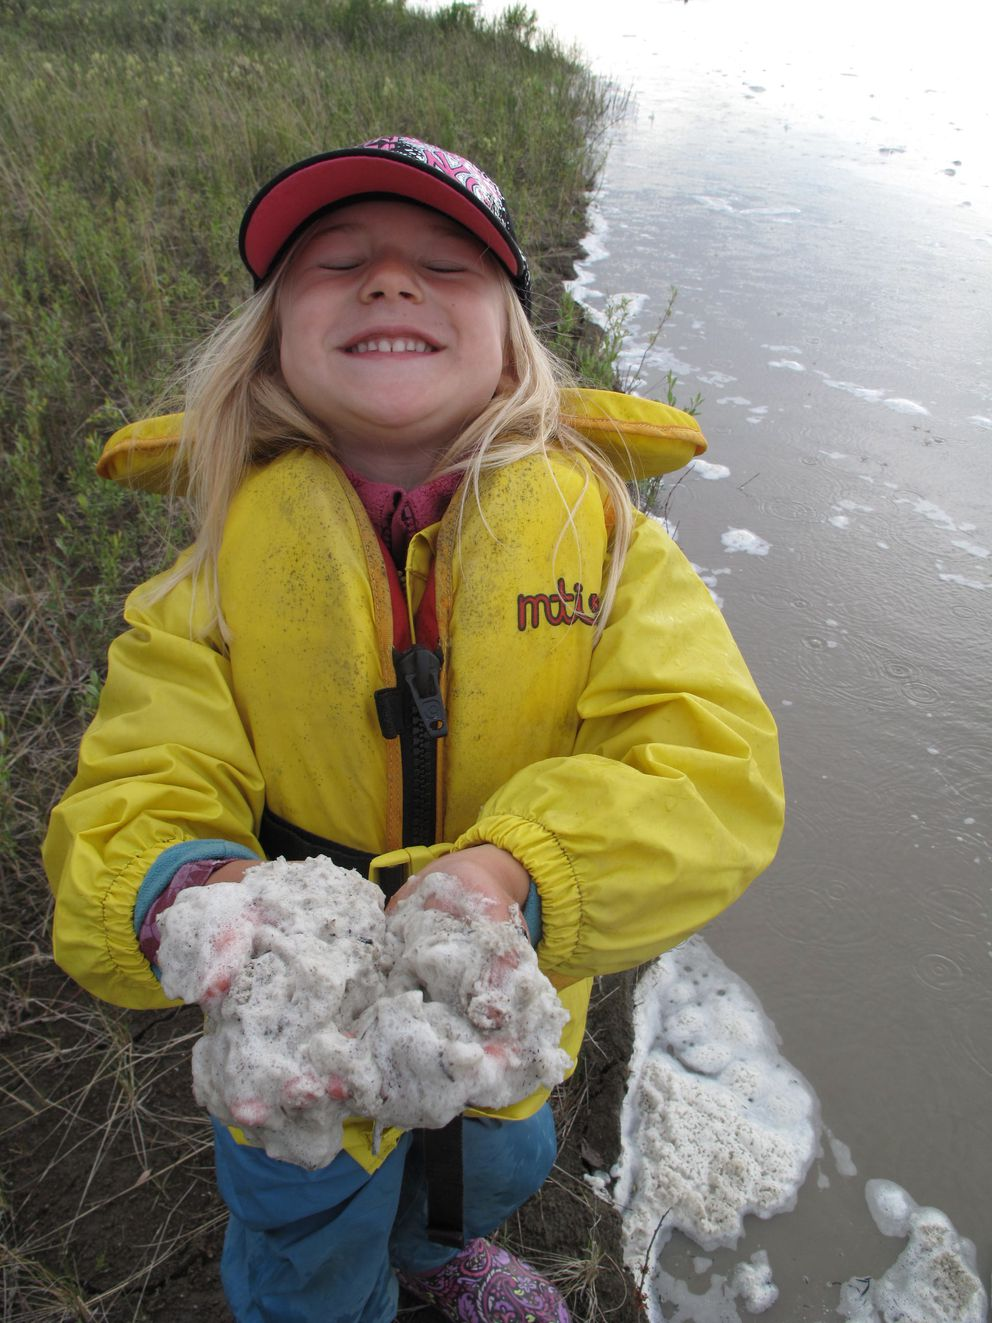 A girl examines foam floating on the Tanana River. (Ned Rozell / UAF Geophysical Institute)